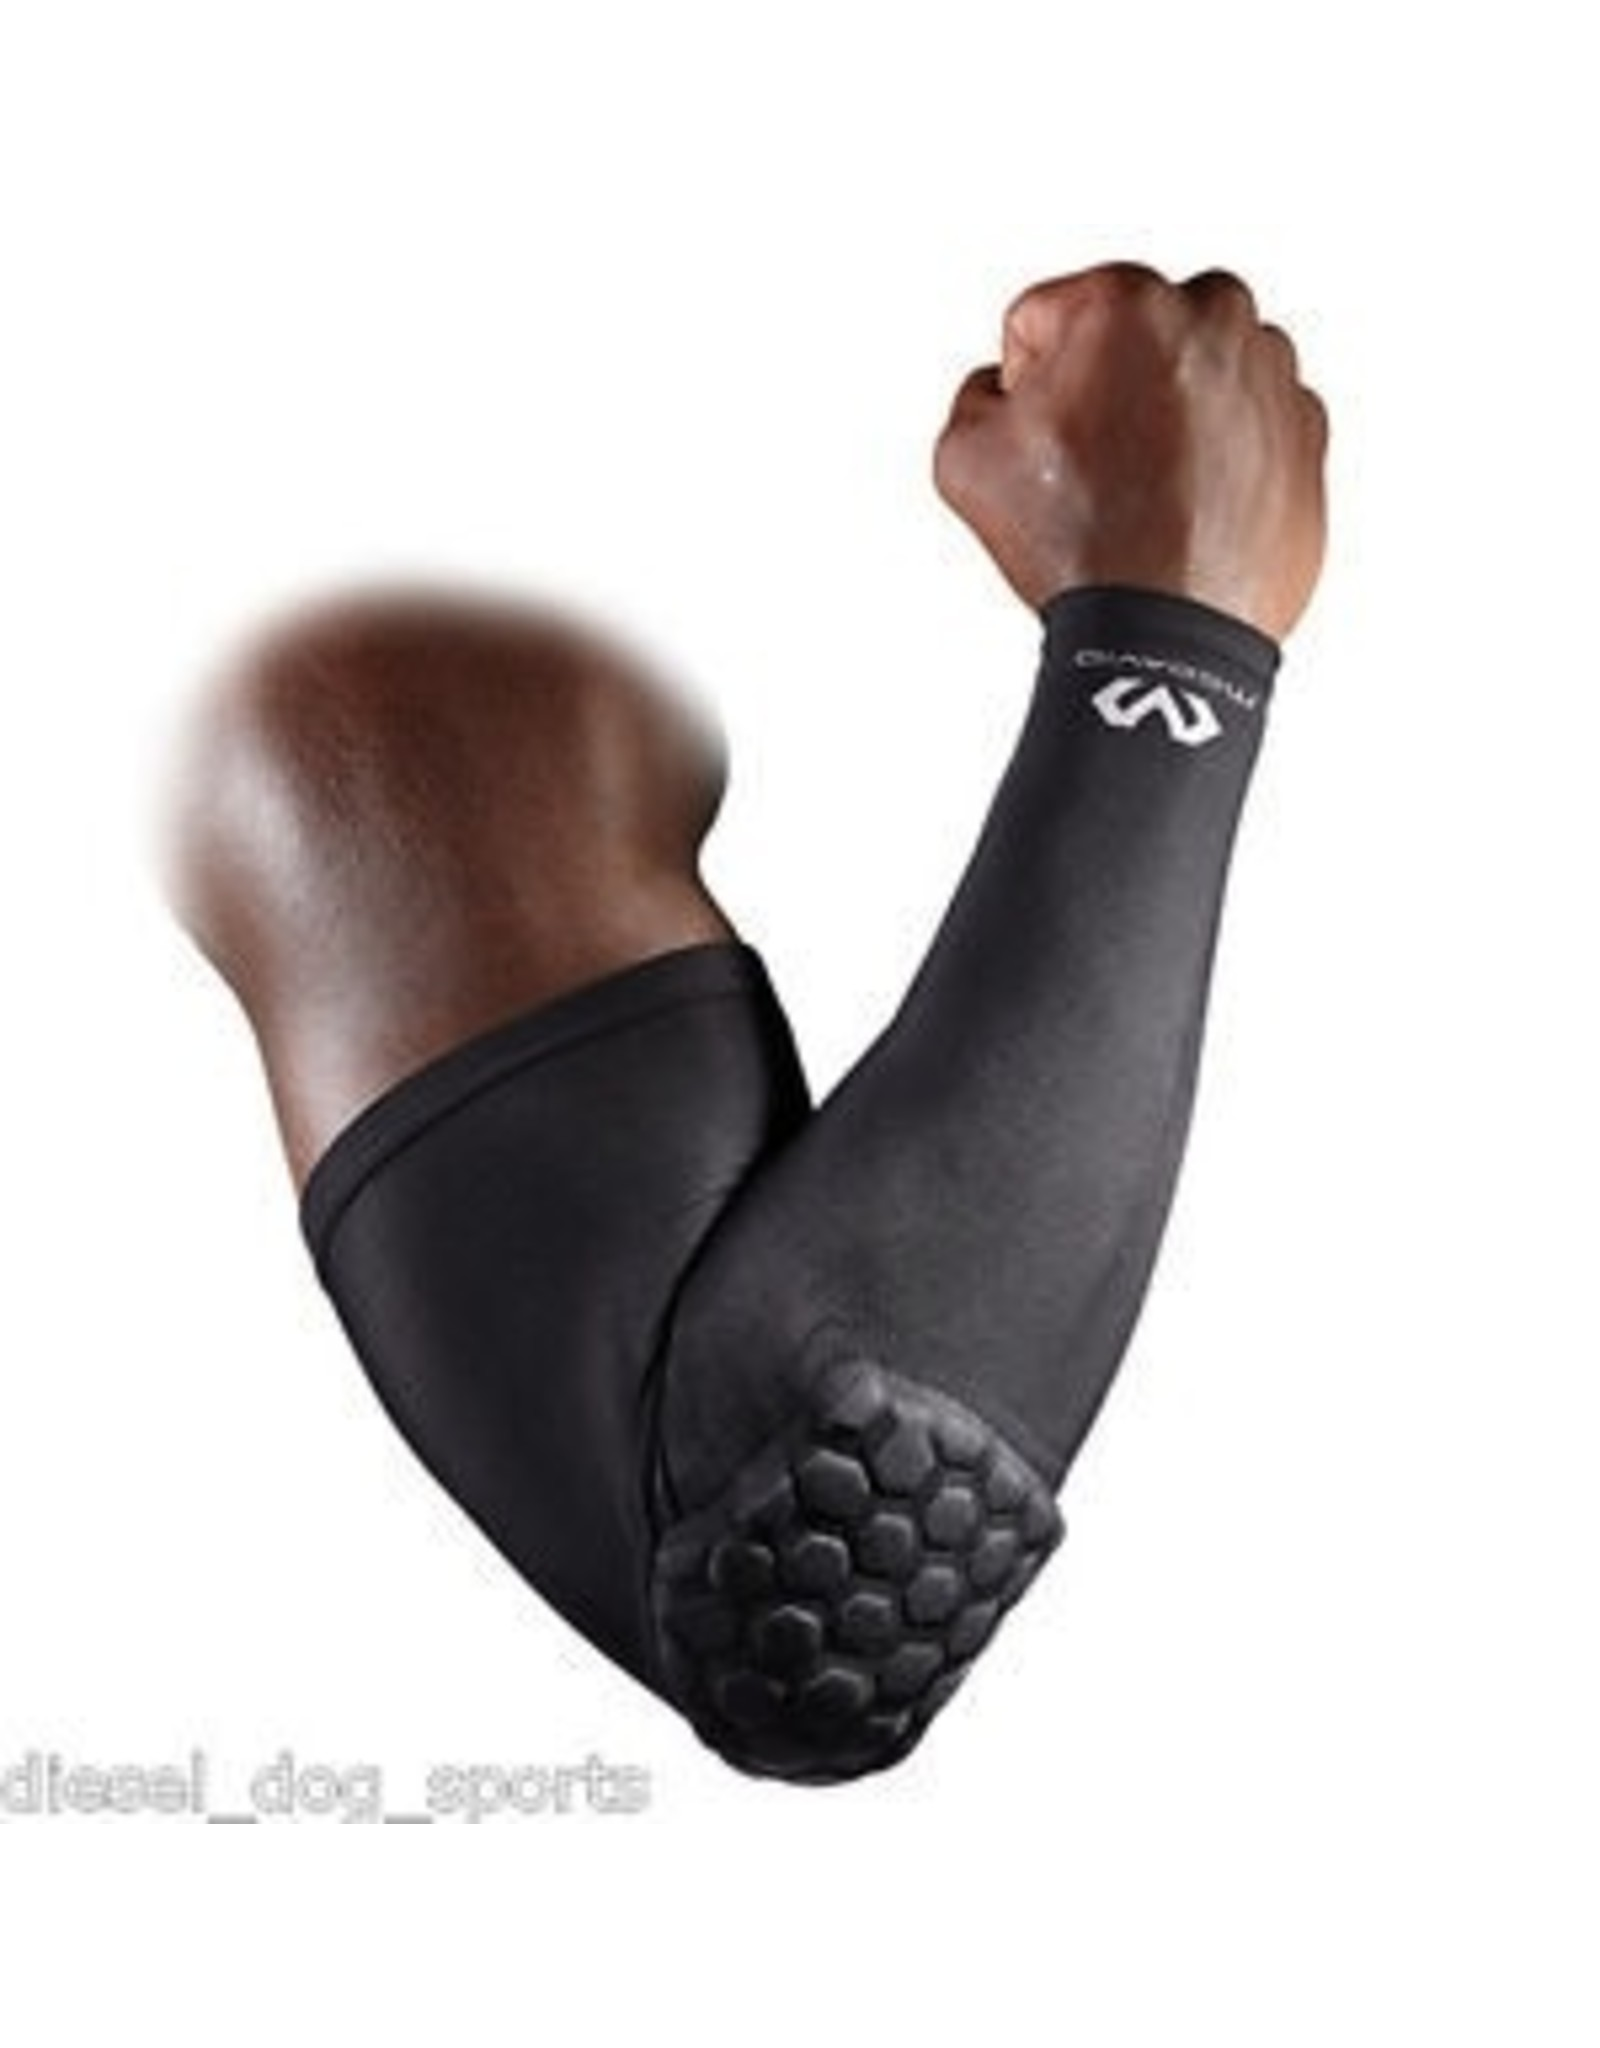 McDavid HEX Shooter Arm Sleeve